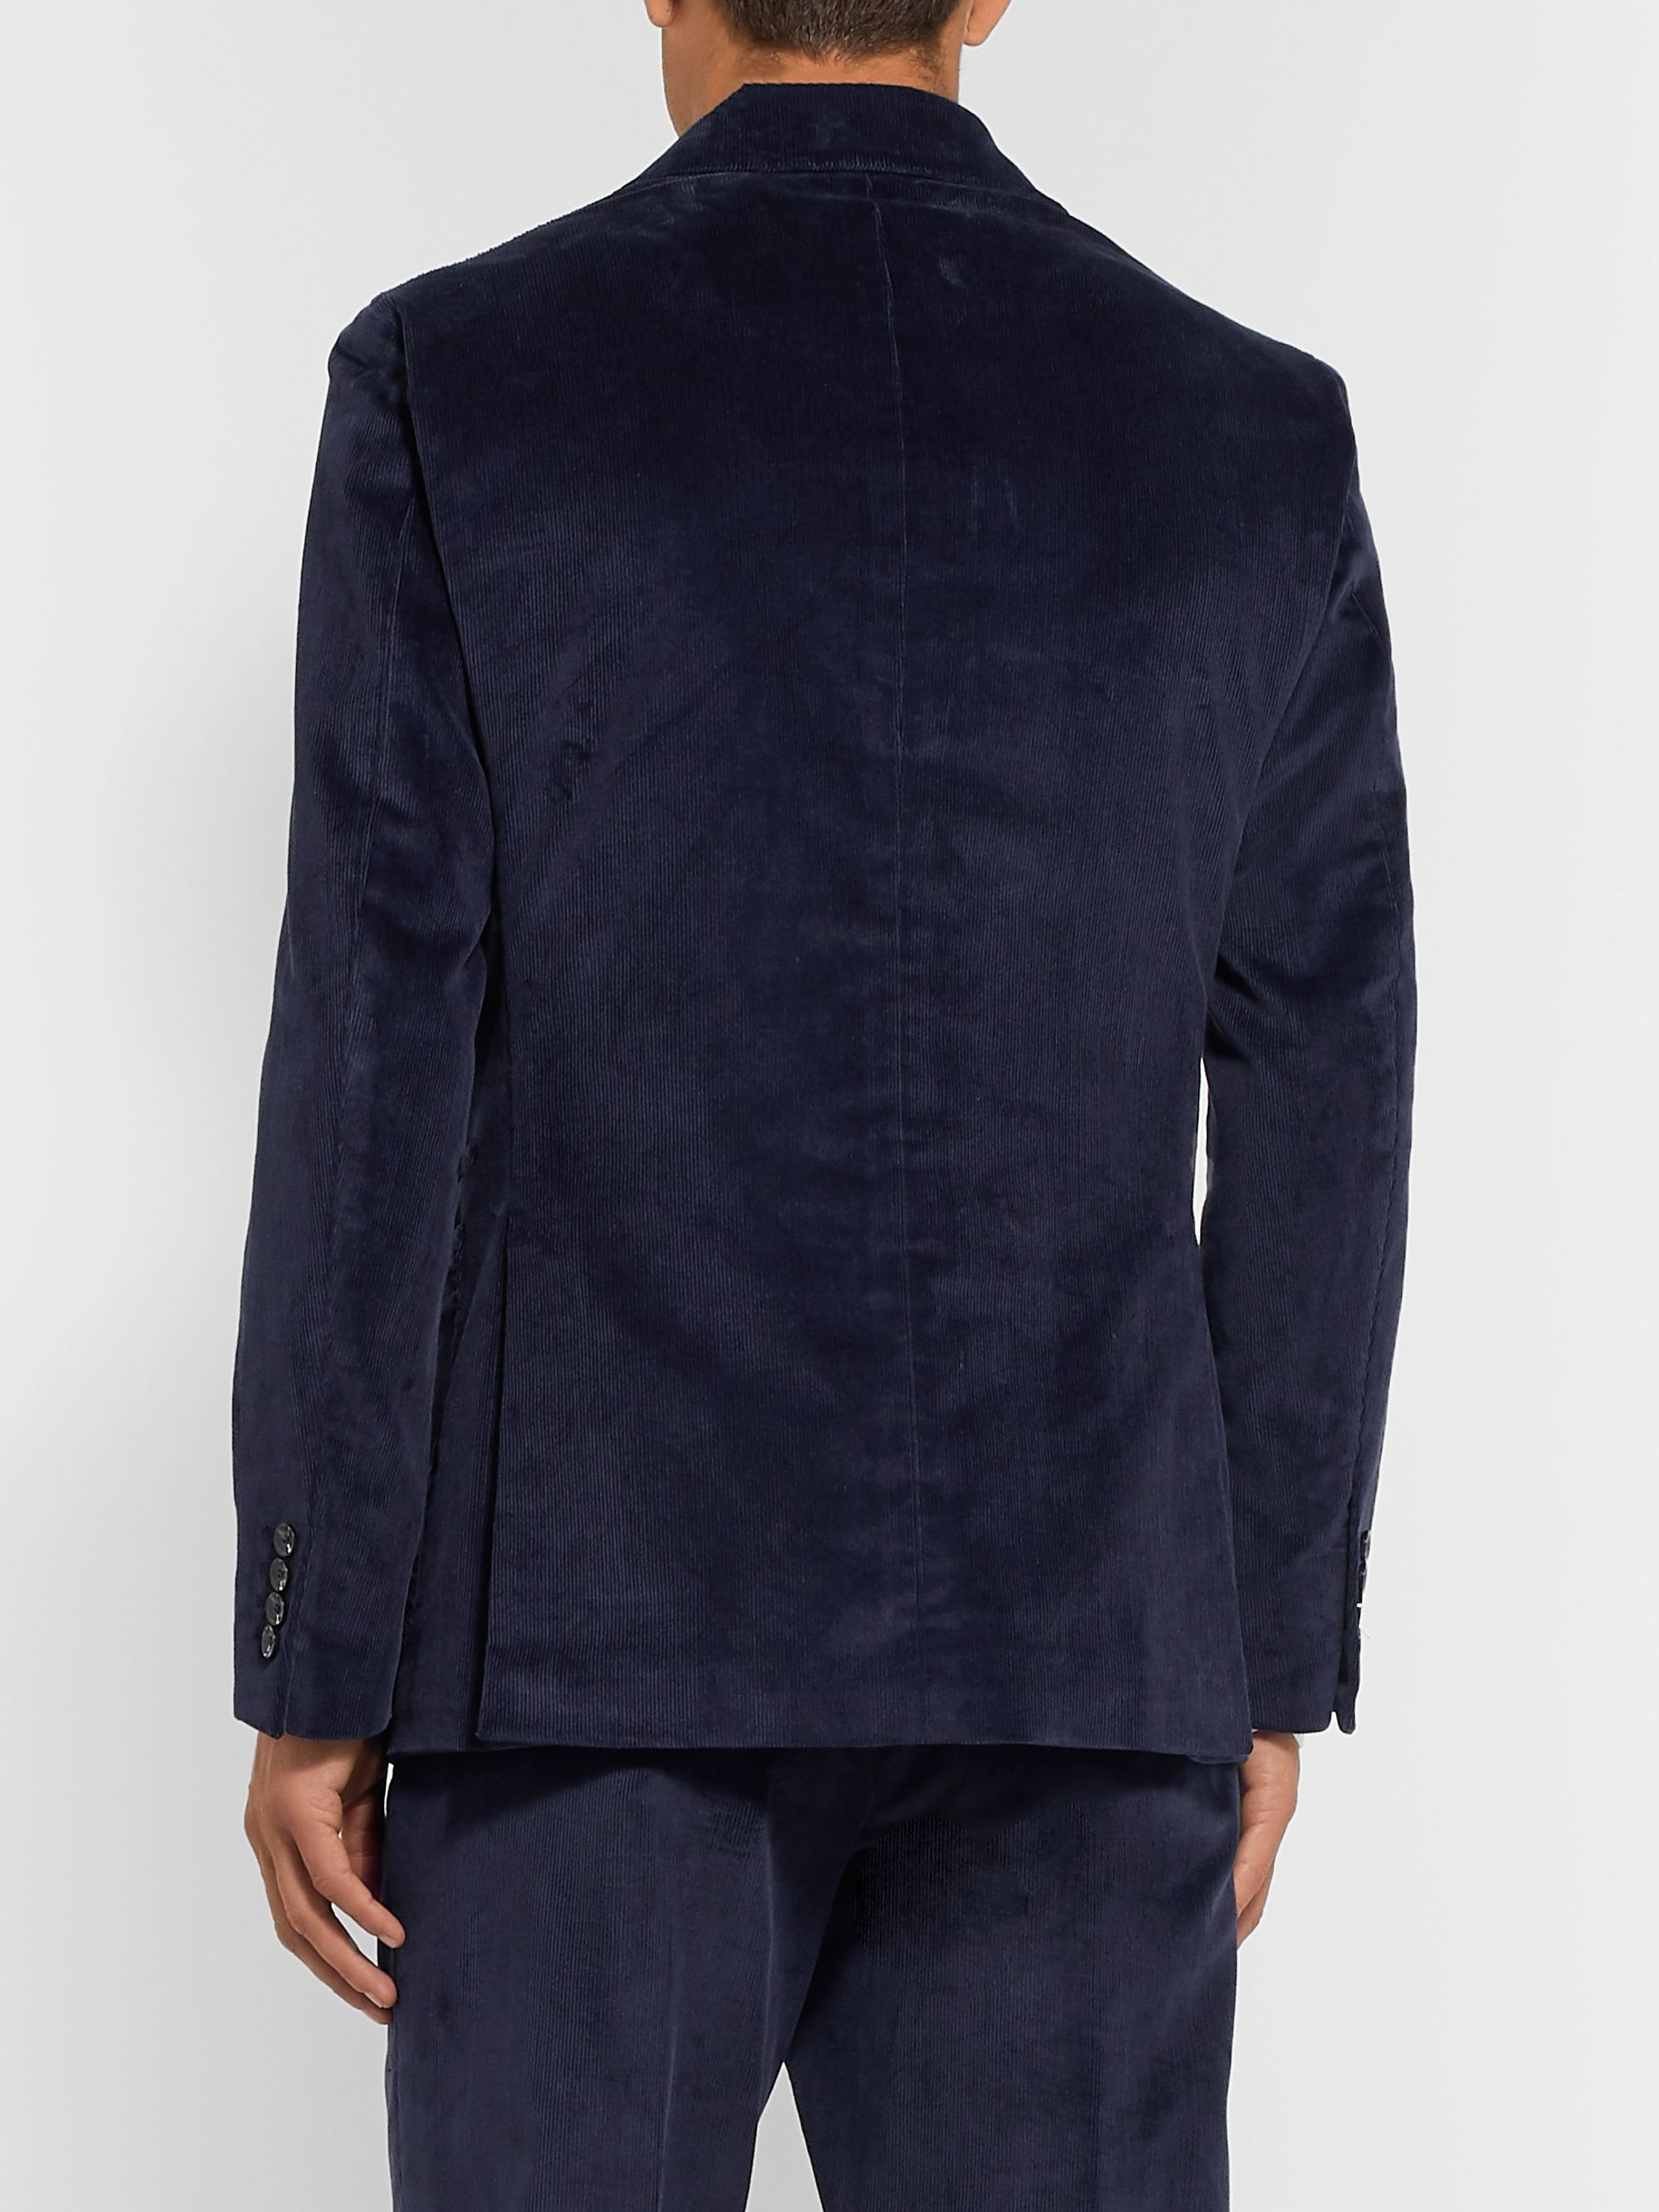 Caruso Indigo Unstructured Cotton-Blend Corduroy Suit Jacket